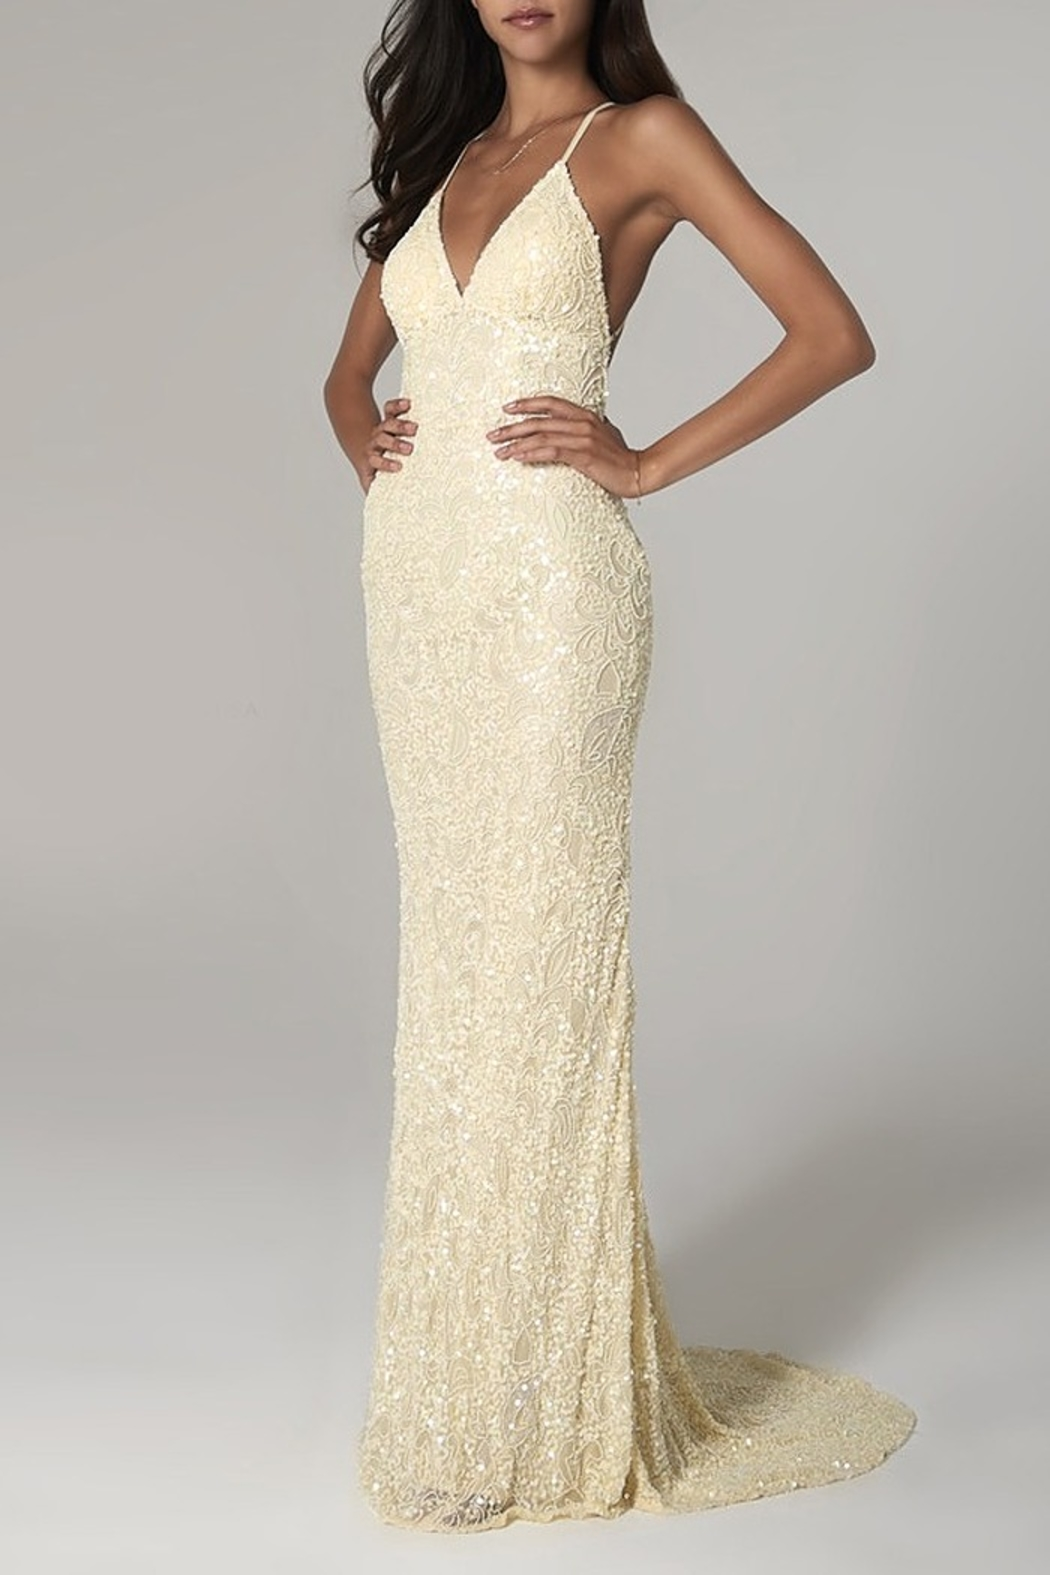 Scala Beaded Paisley Gown w/Low Crisscross Back - Front Cropped Image